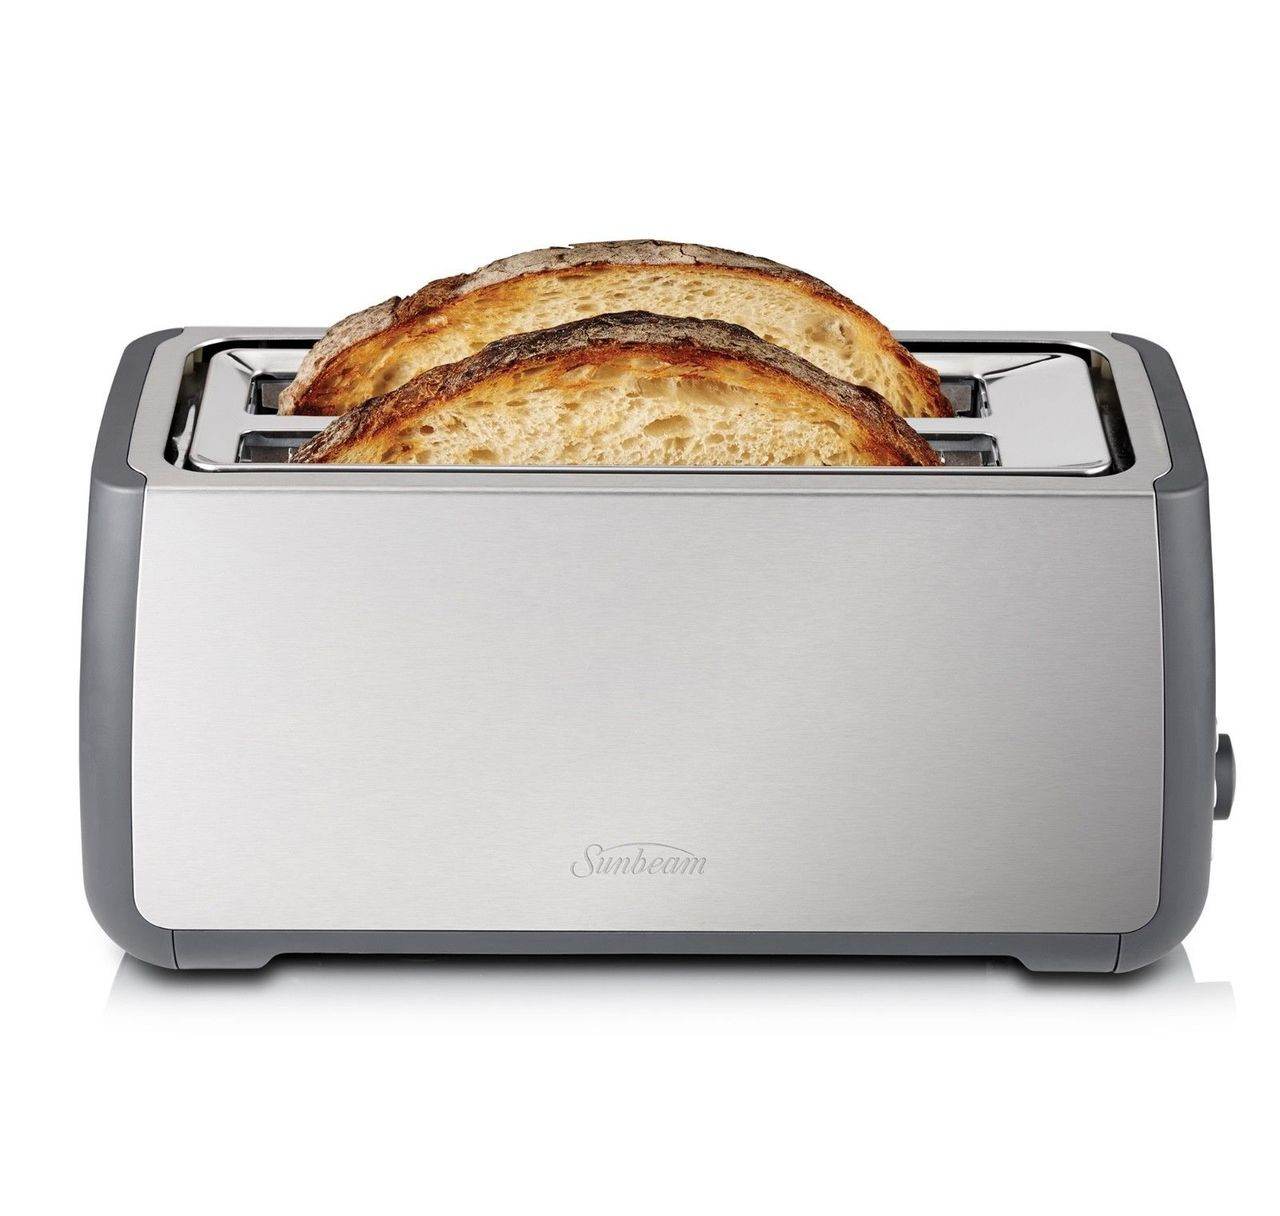 Sunbeam TA4540 Long Slot Toaster - 4 Slice - 2 slots accomodates 4 slices